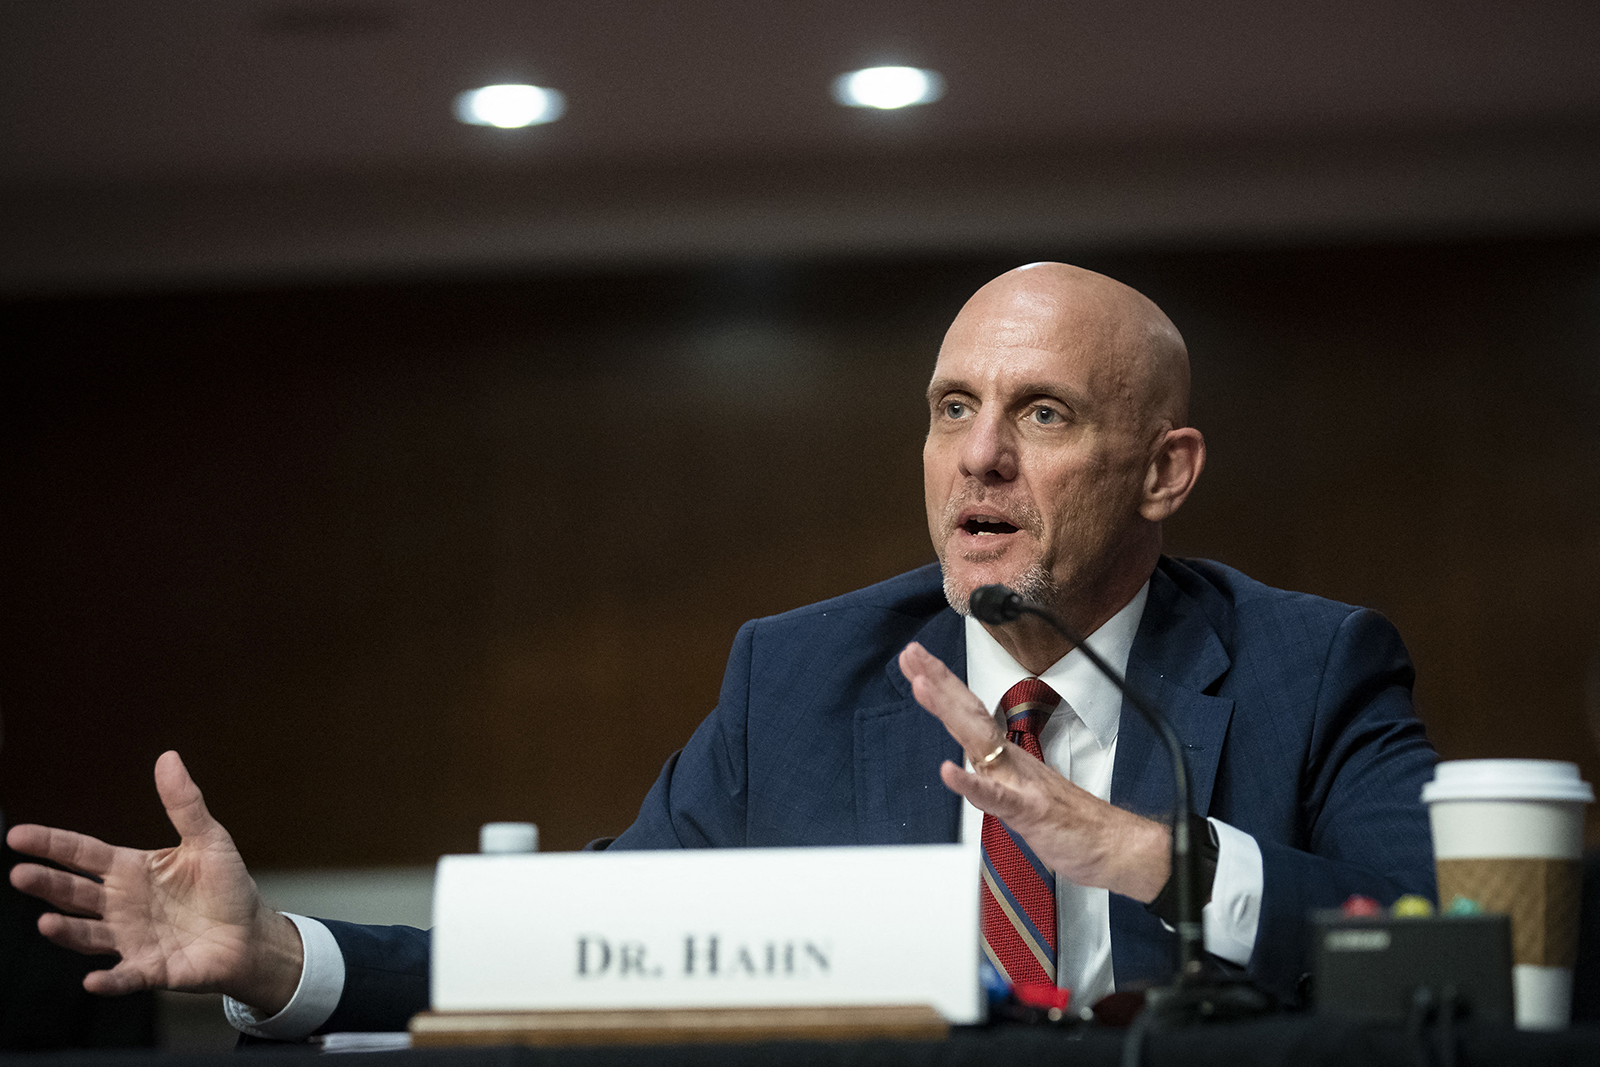 Dr. Stephen Hahn, commissioner of food and drugs at the U.S. Food and Drug Administration (FDA), speaks during a Senate Health, Education, Labor and Pensions Committee hearing in Washington, DC, on June 30.